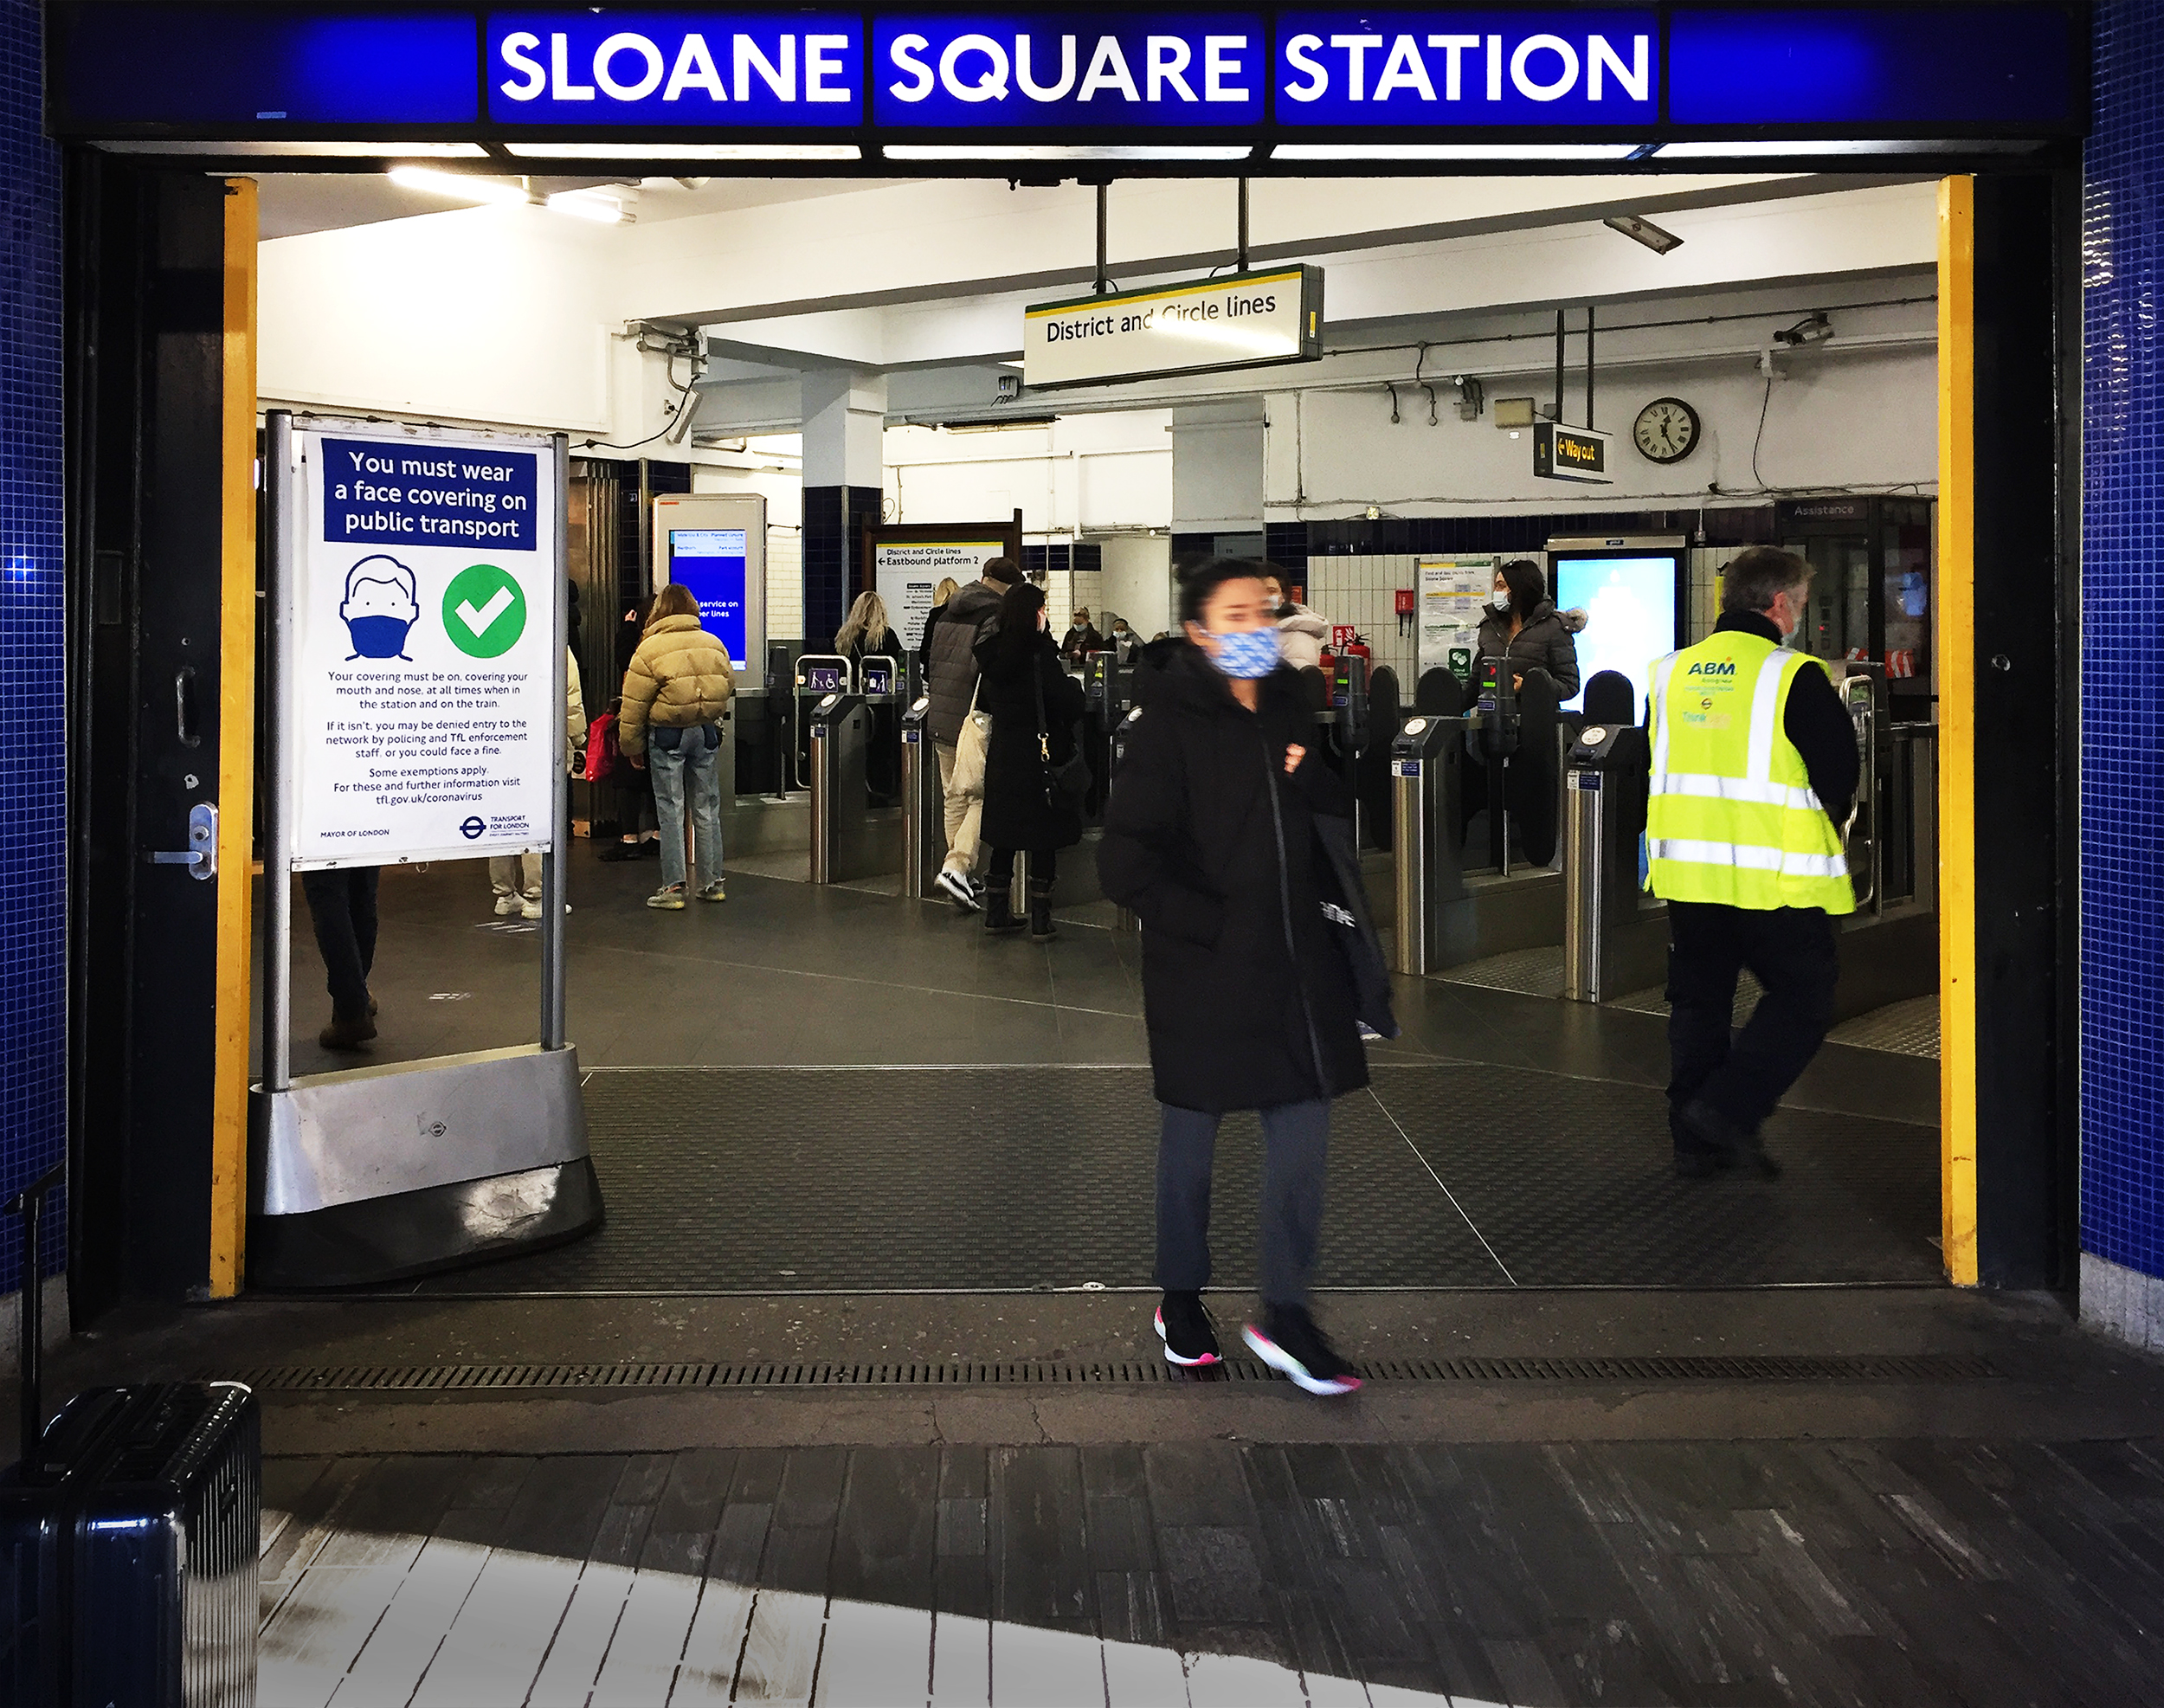 Sloane Square Station Chelsea London